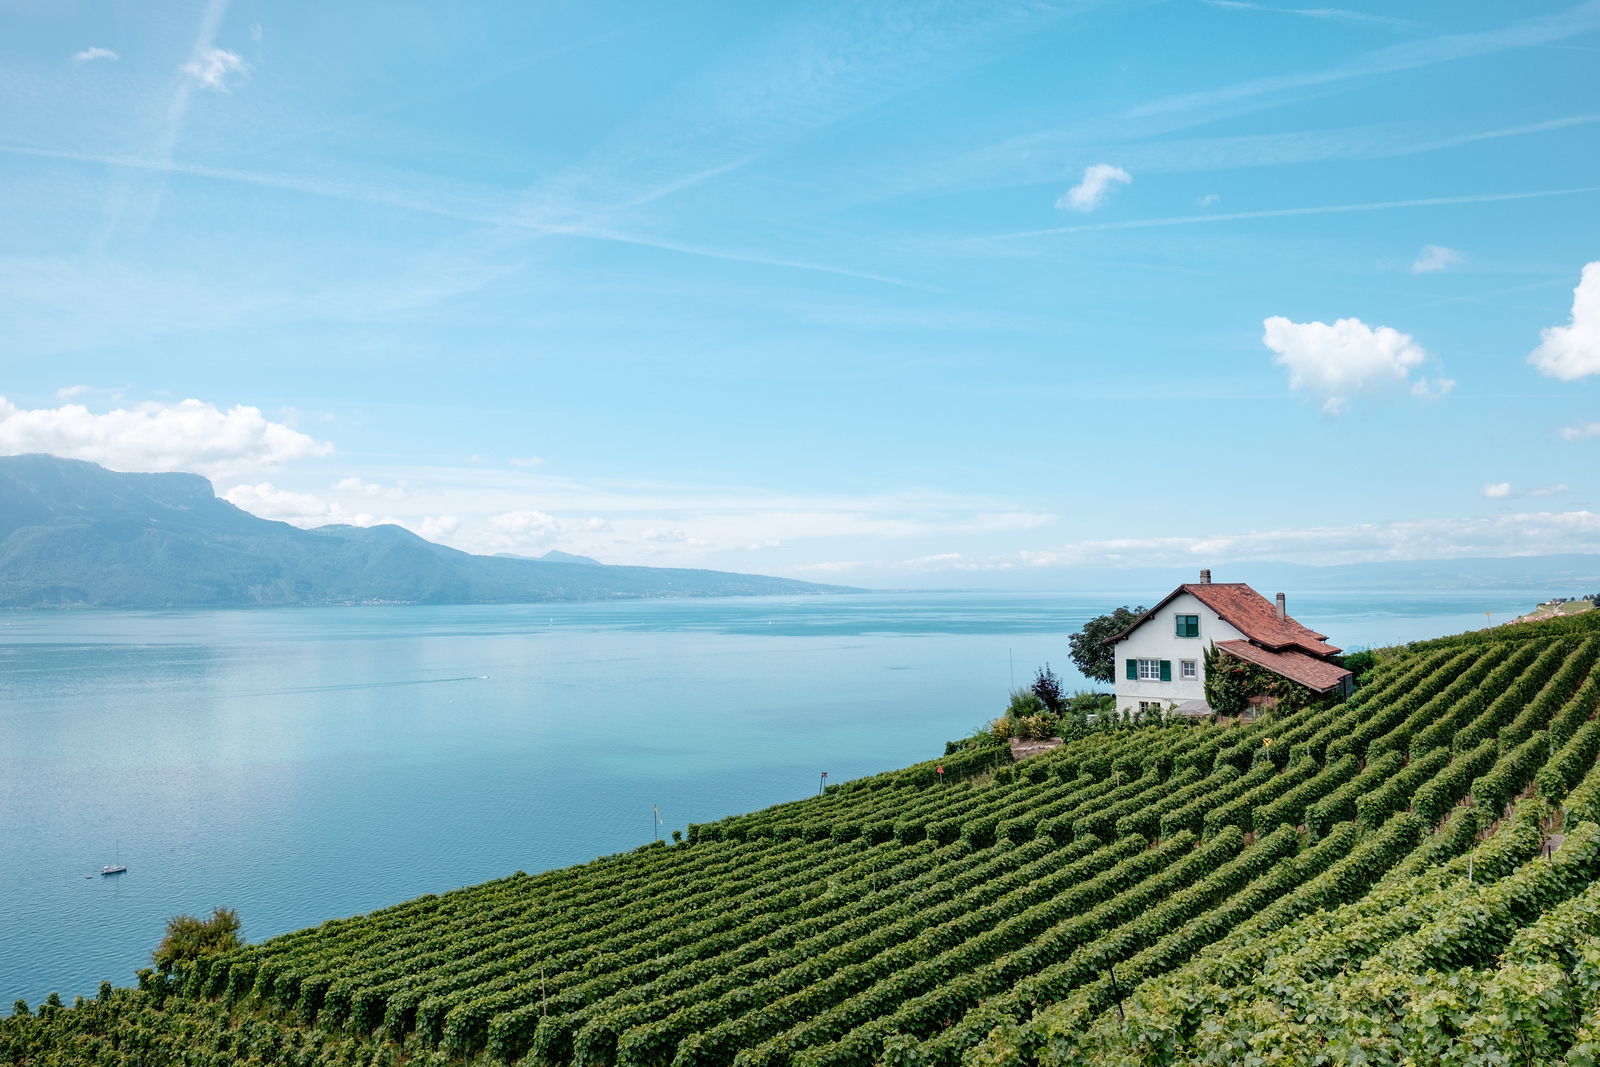 A house in the vineyards, Lavaux